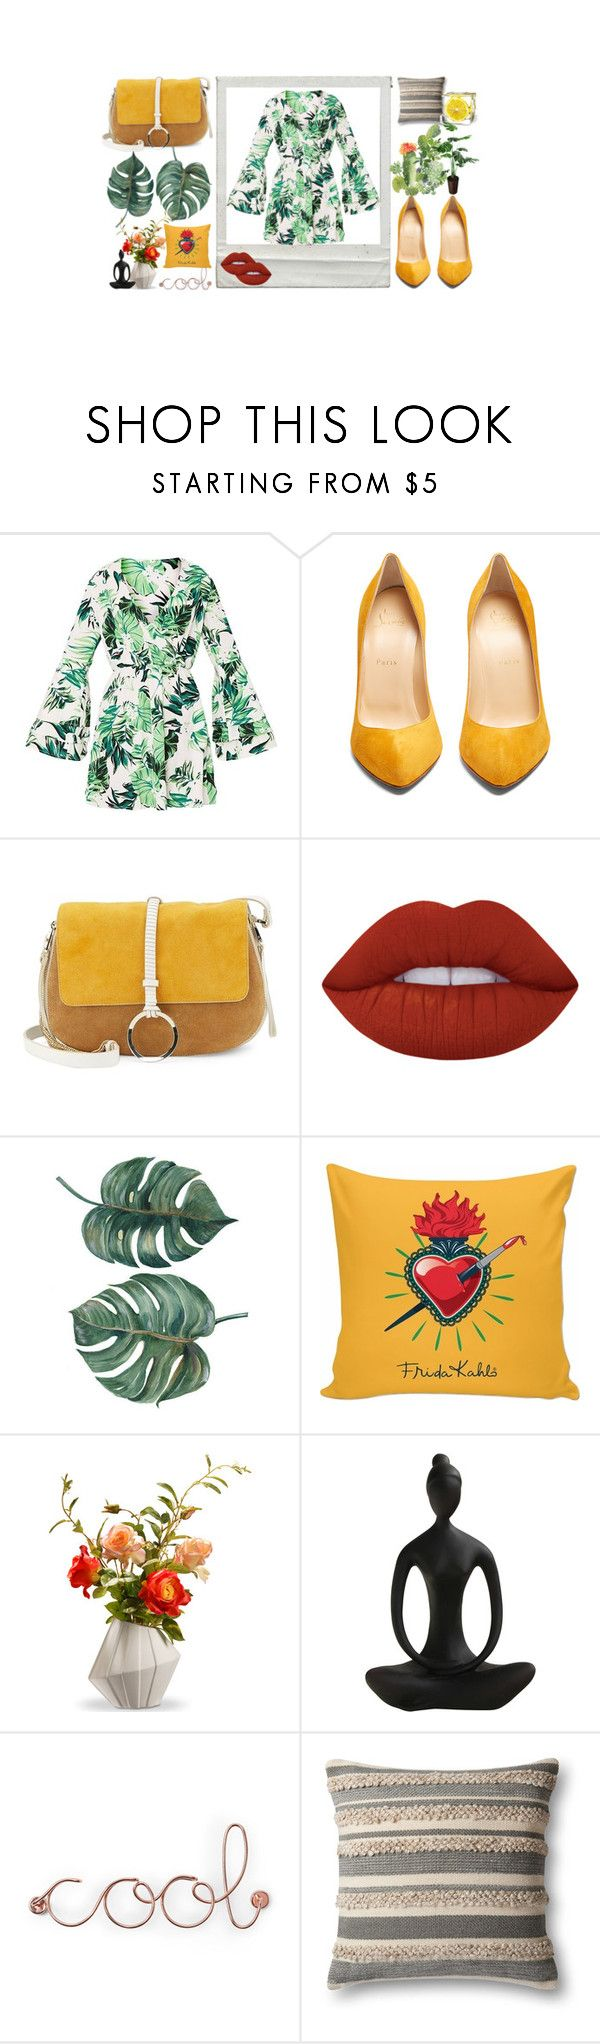 """""""#"""" by fragmxntos ❤ liked on Polyvore featuring Christian Louboutin, Halston Heritage, National Tree Company, Umbra and Magnolia Home"""